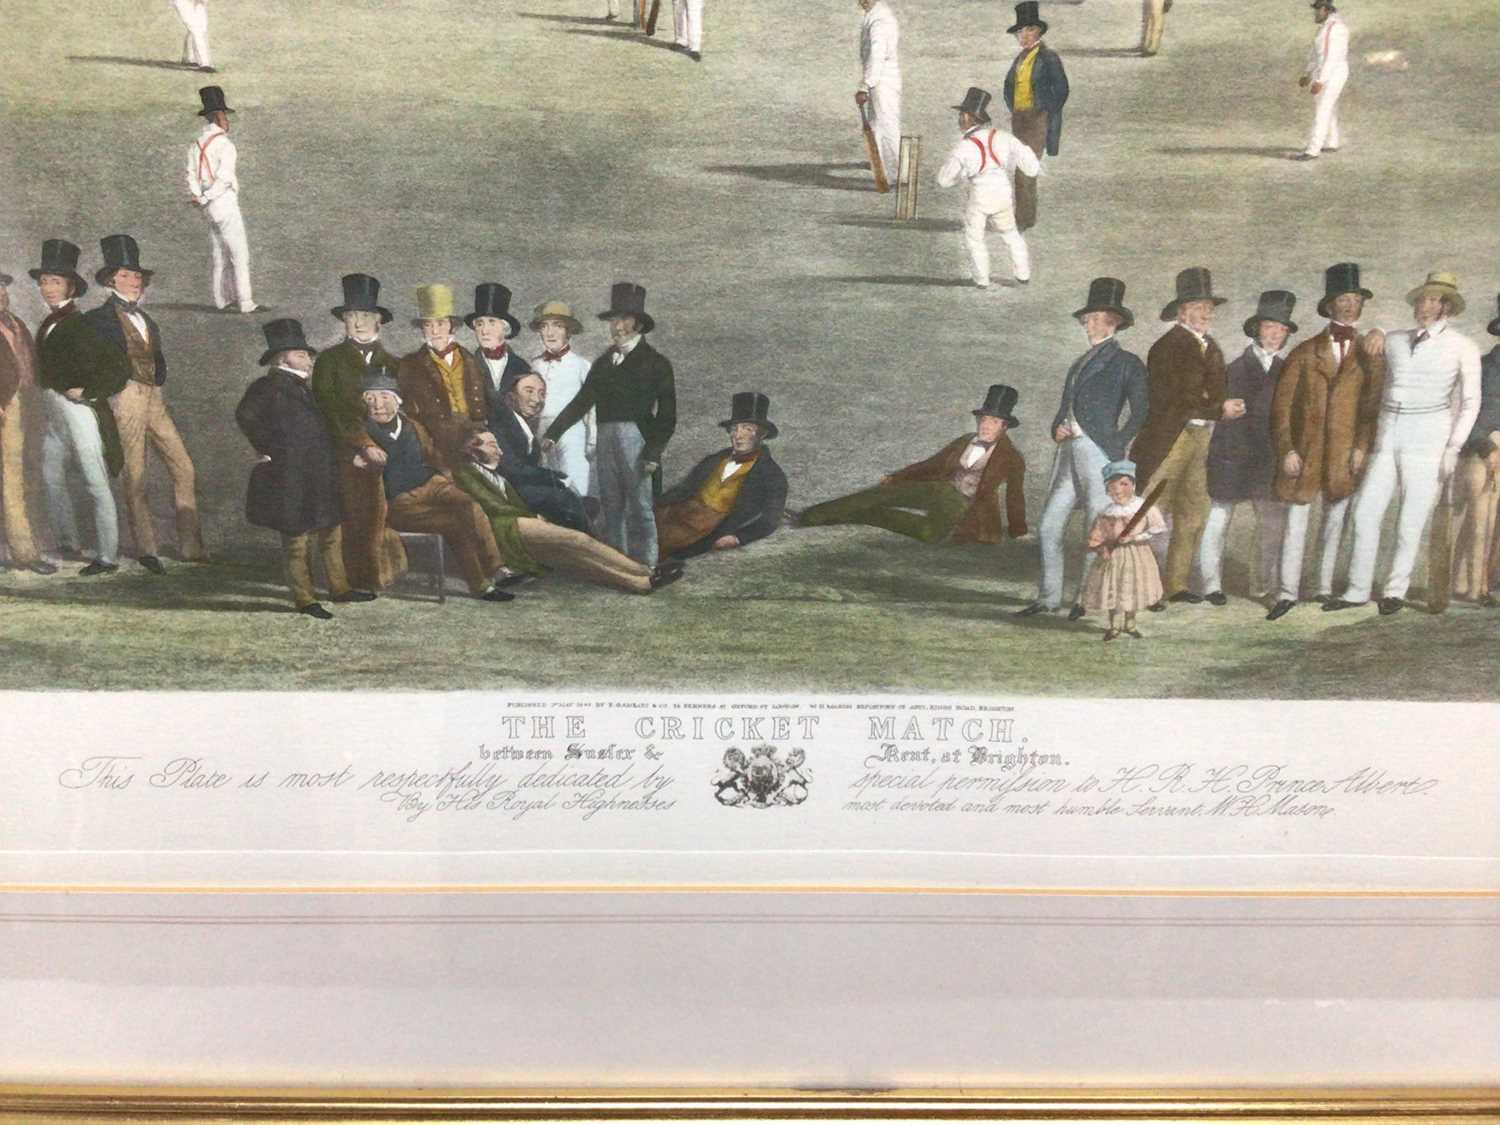 19th century-style coloured print - The Cricket Match between Sussex & Kent, at Brighton, 48cm x 66c - Image 3 of 8